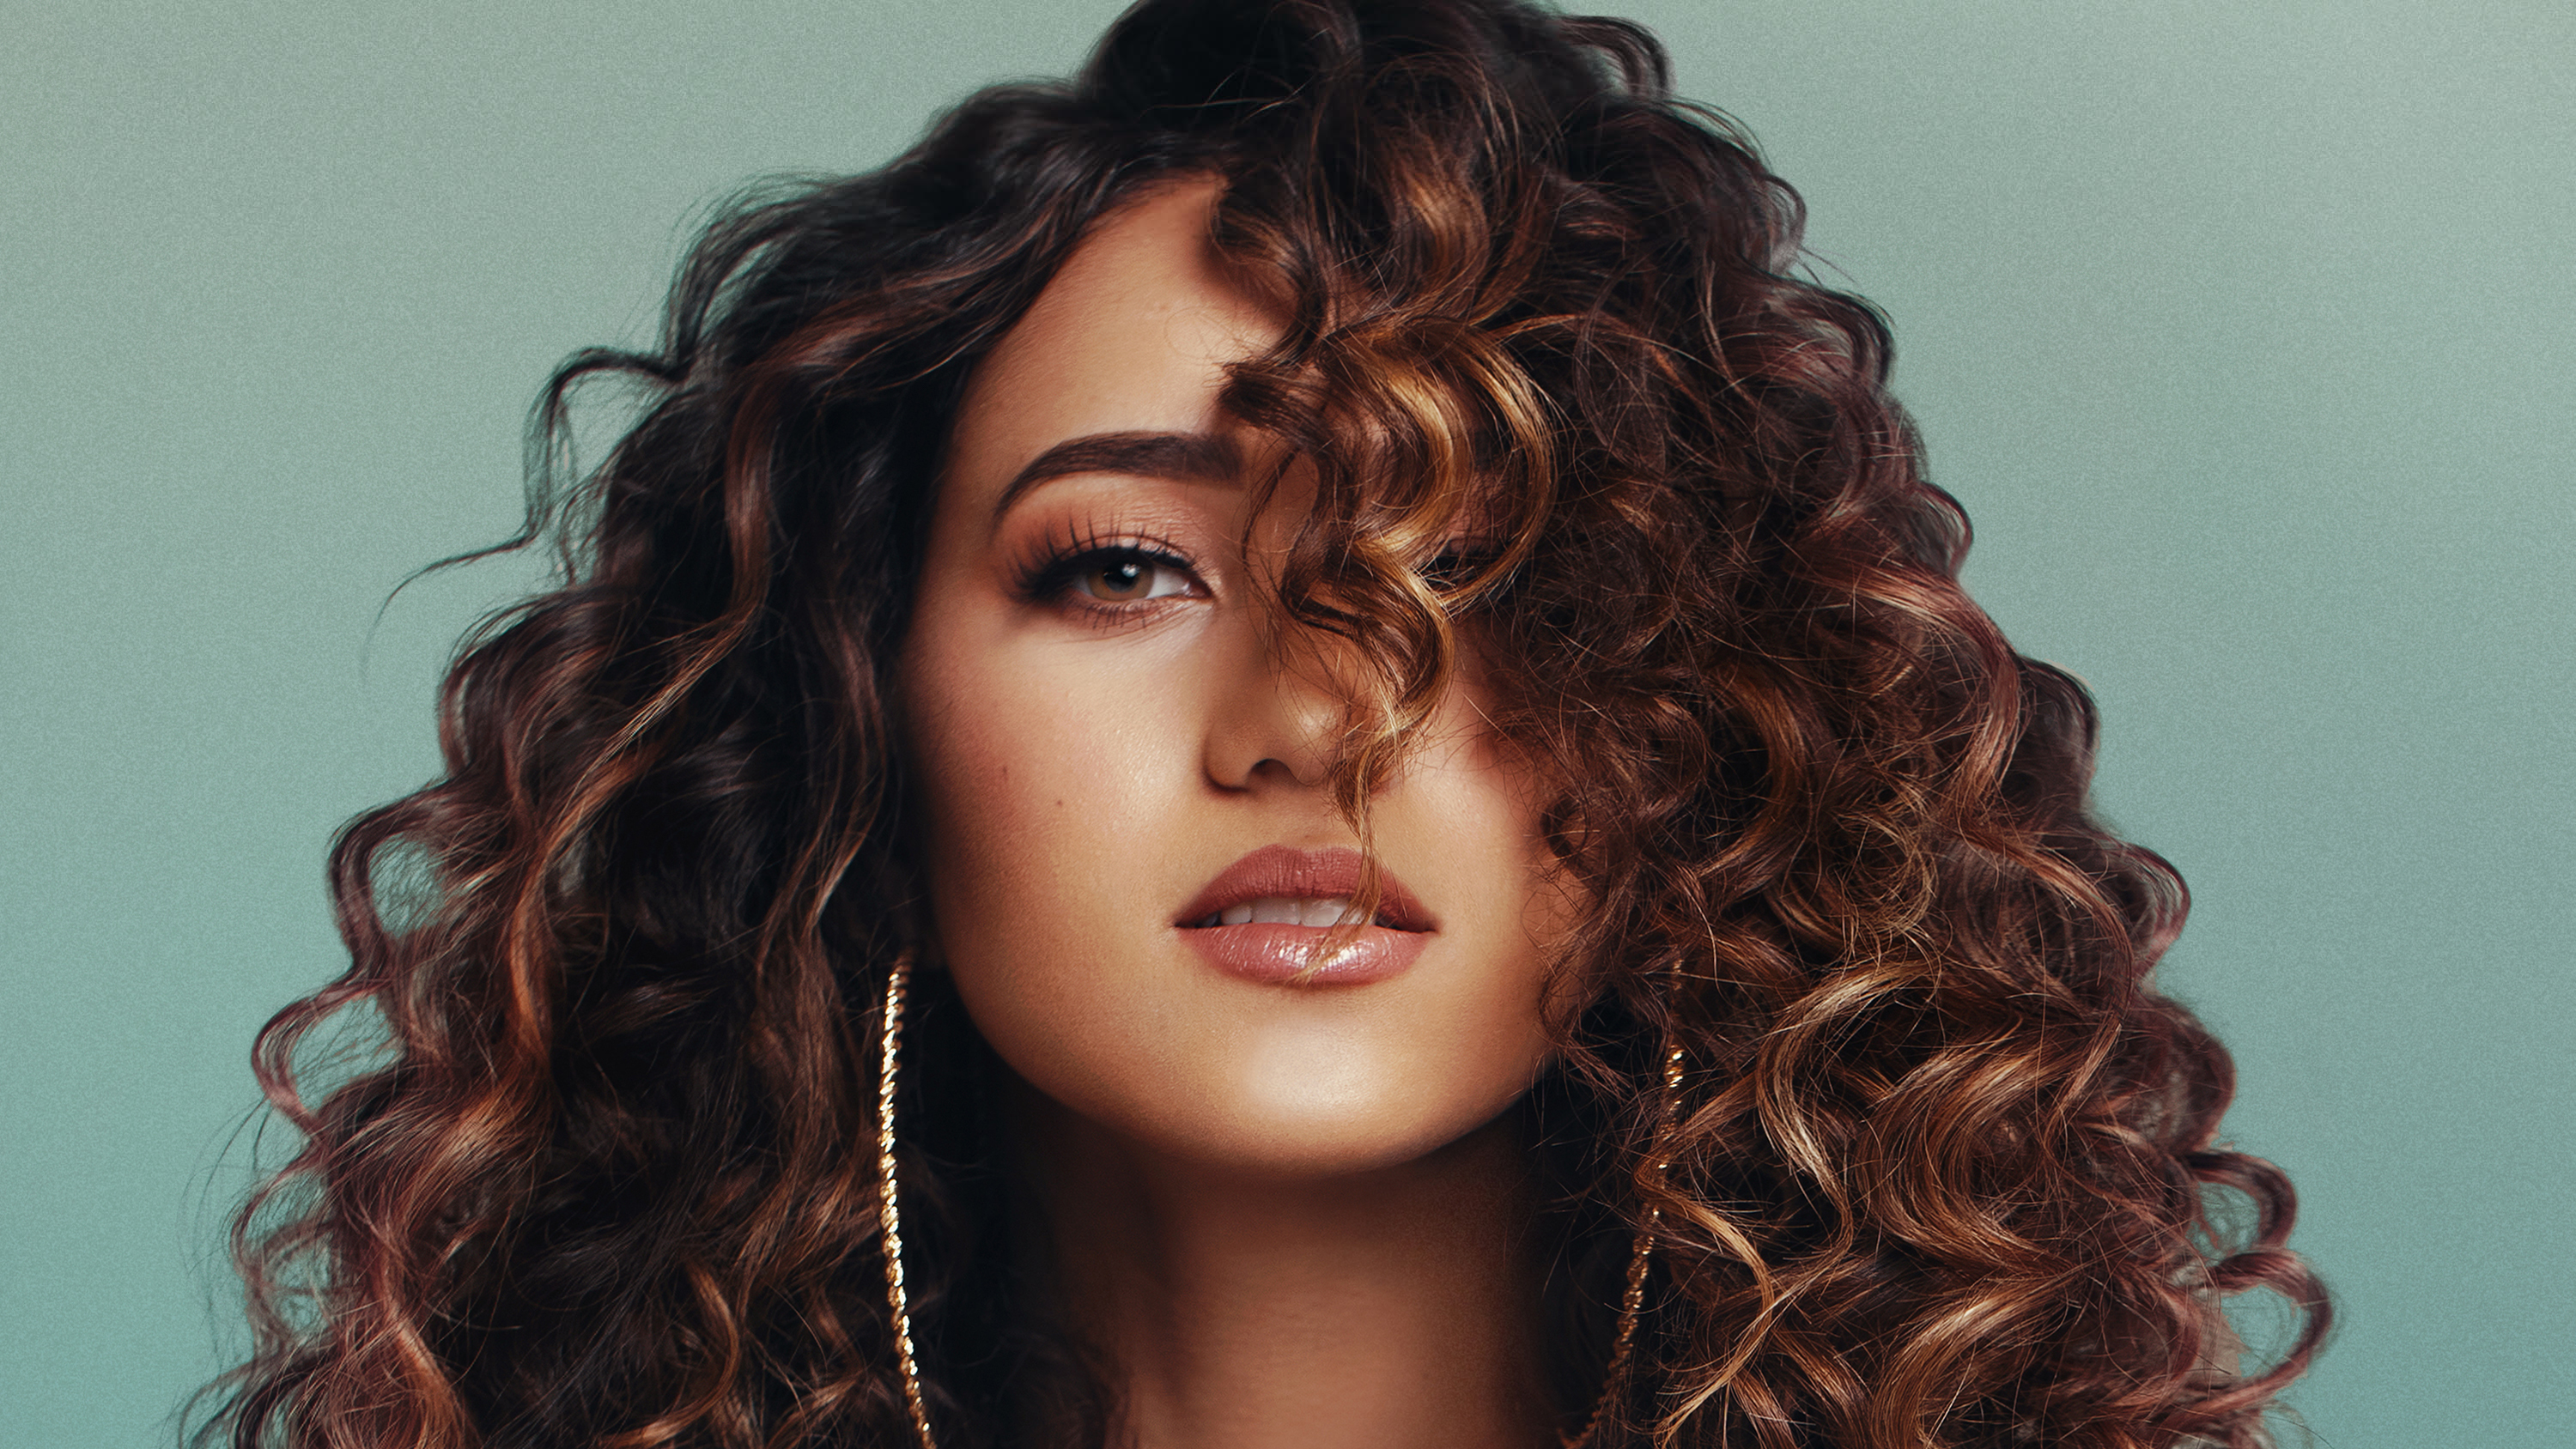 Ten Minutes with Skylar Stecker